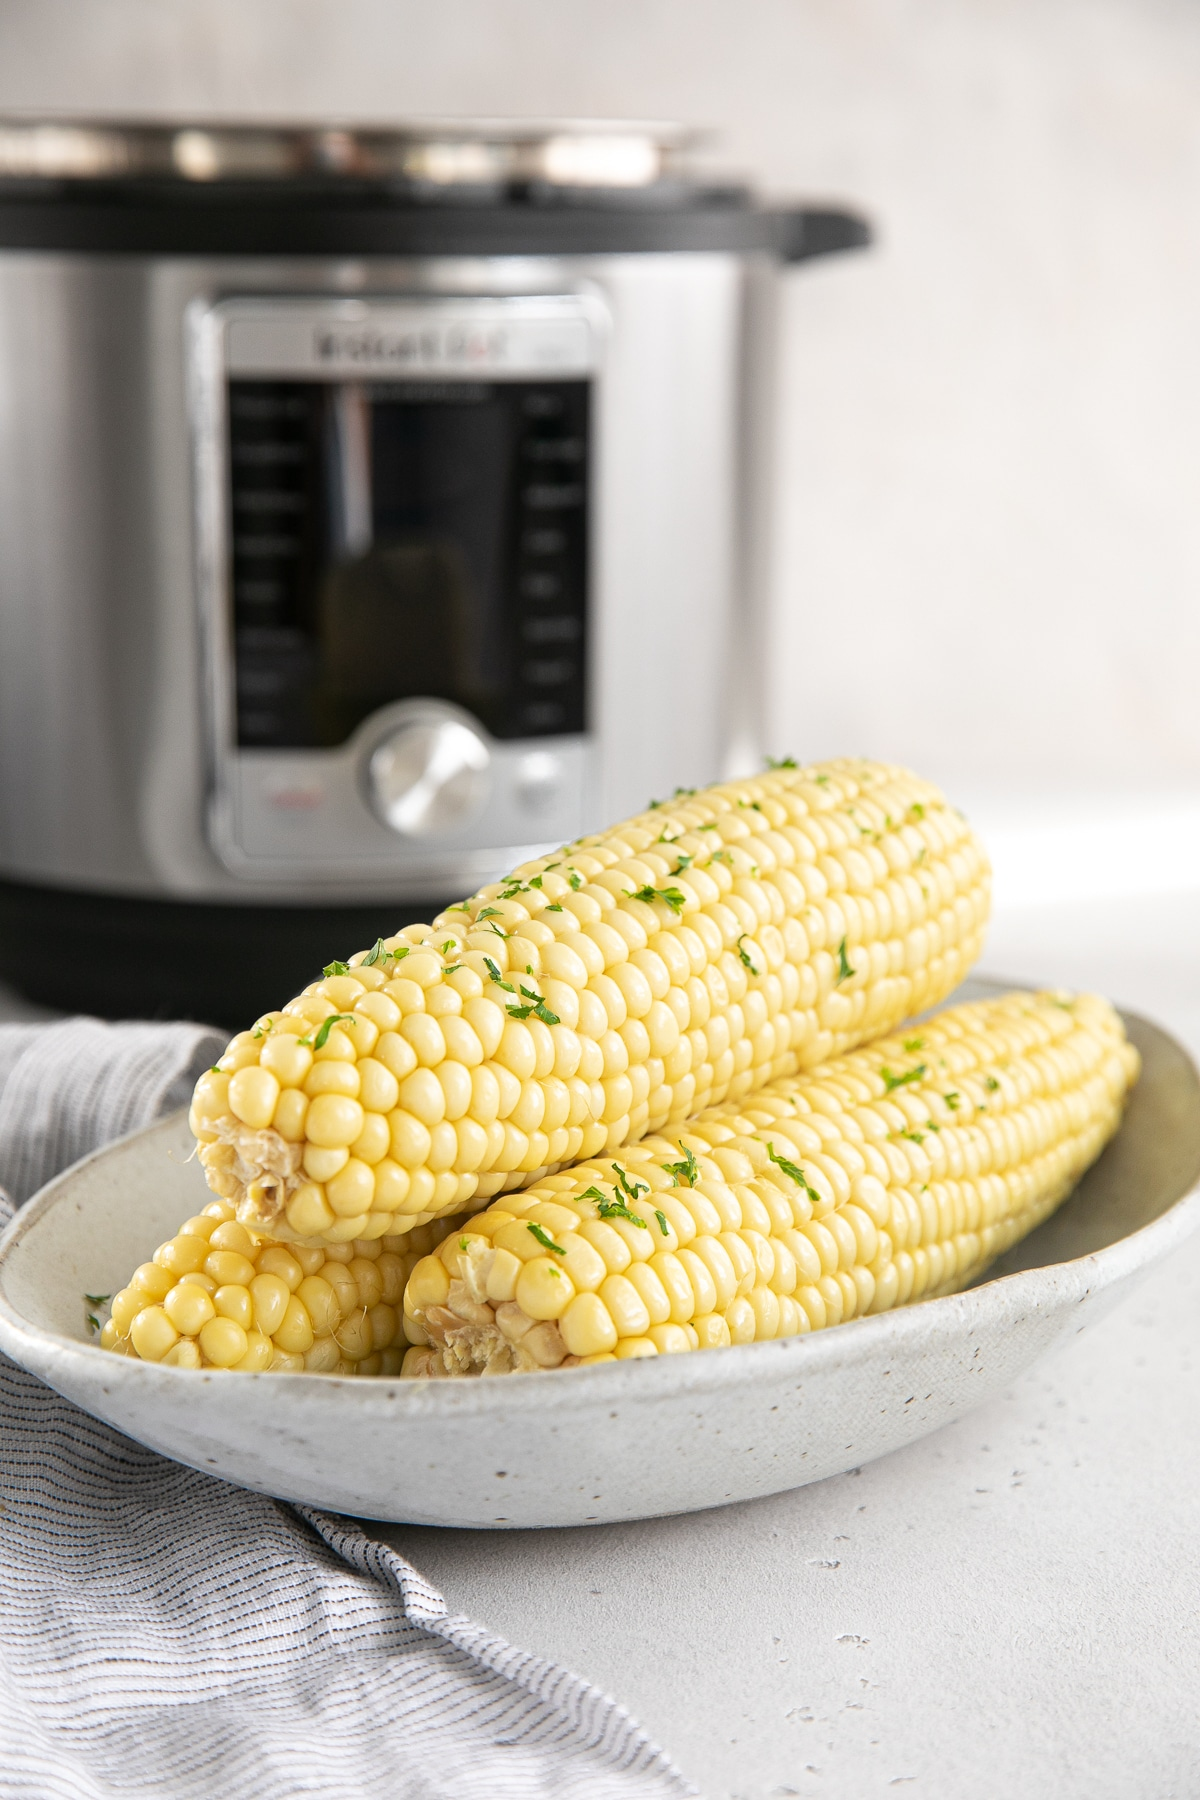 Three cooked and buttery ears of corn garnished with parsley.